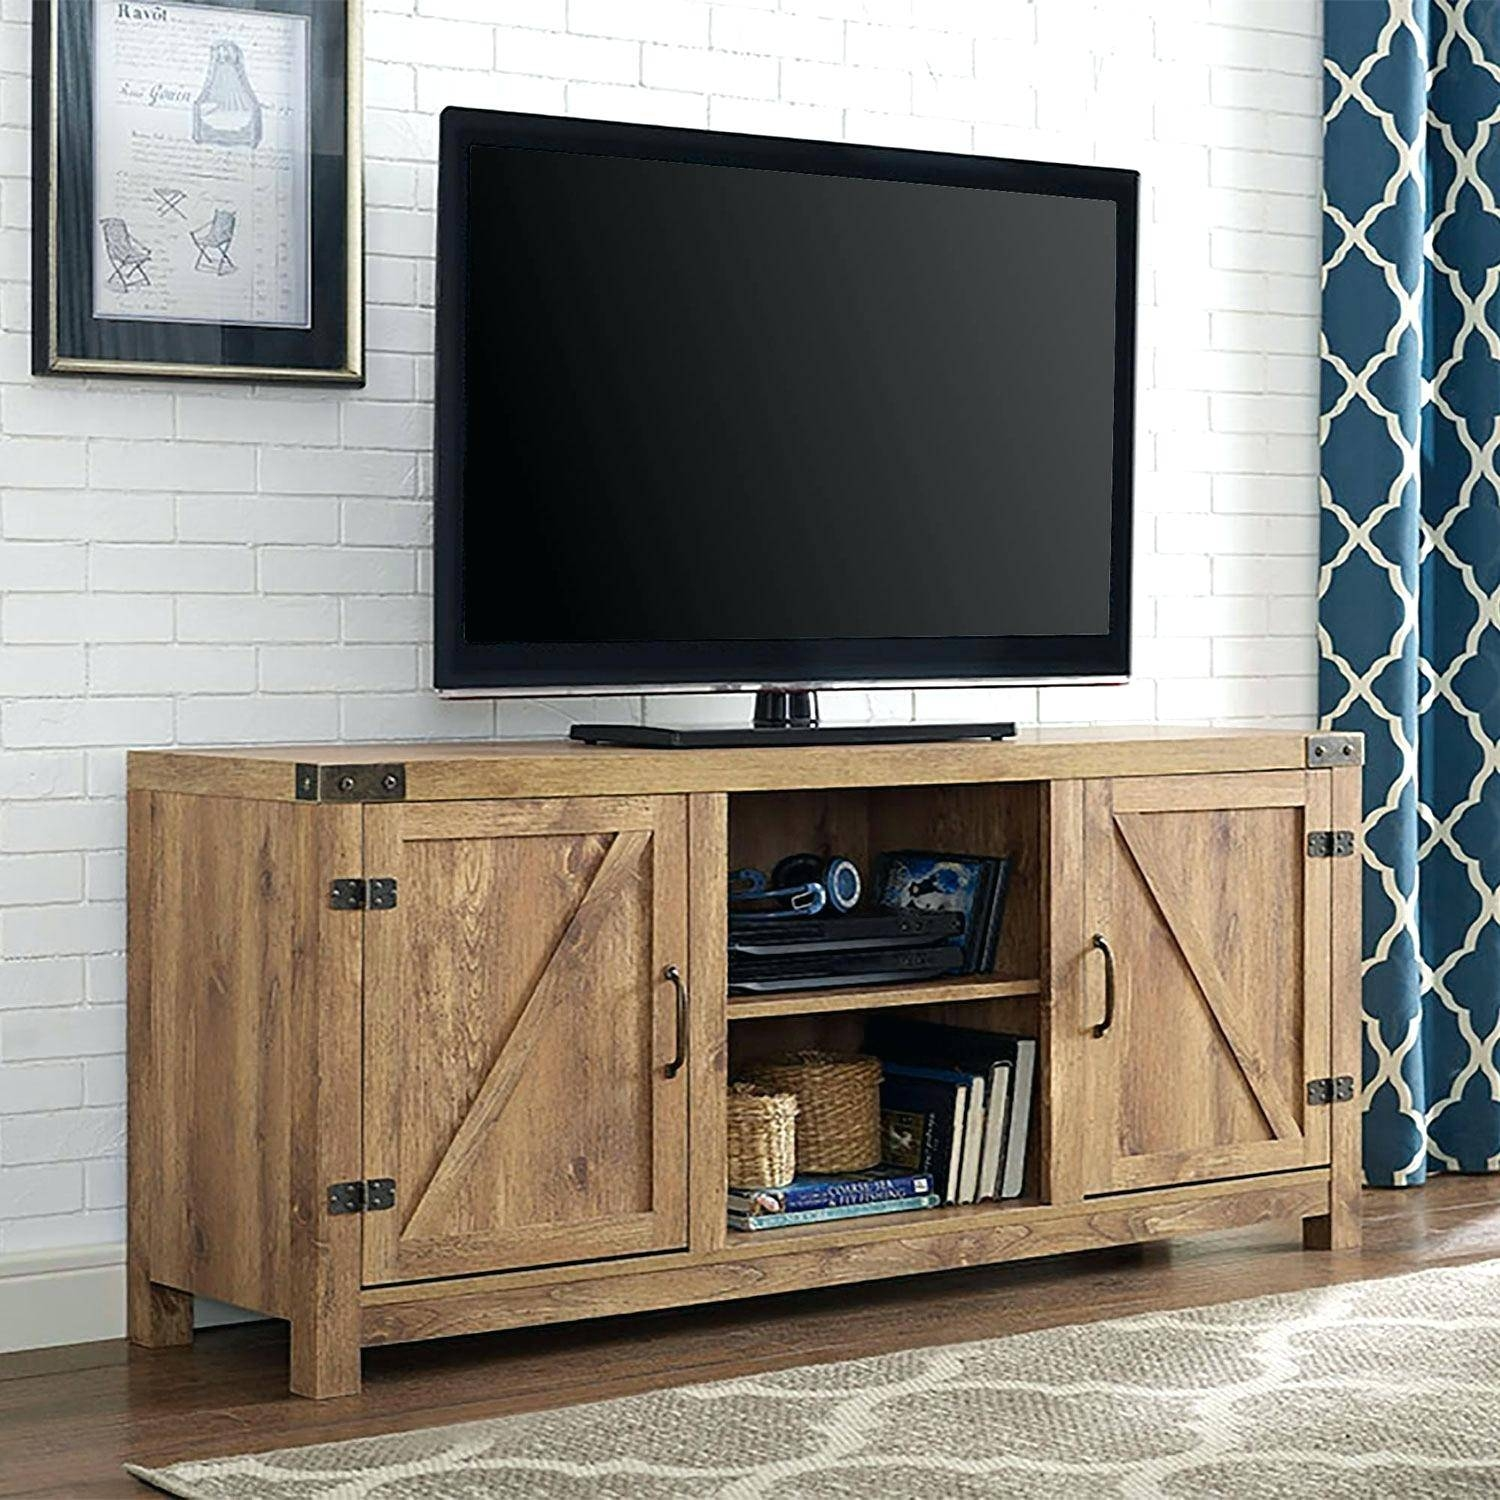 Tv Stand: Cozy Extra Long Tv Stand Design. Contemporary Tv Stands throughout Extra Long Tv Stands (Image 15 of 15)